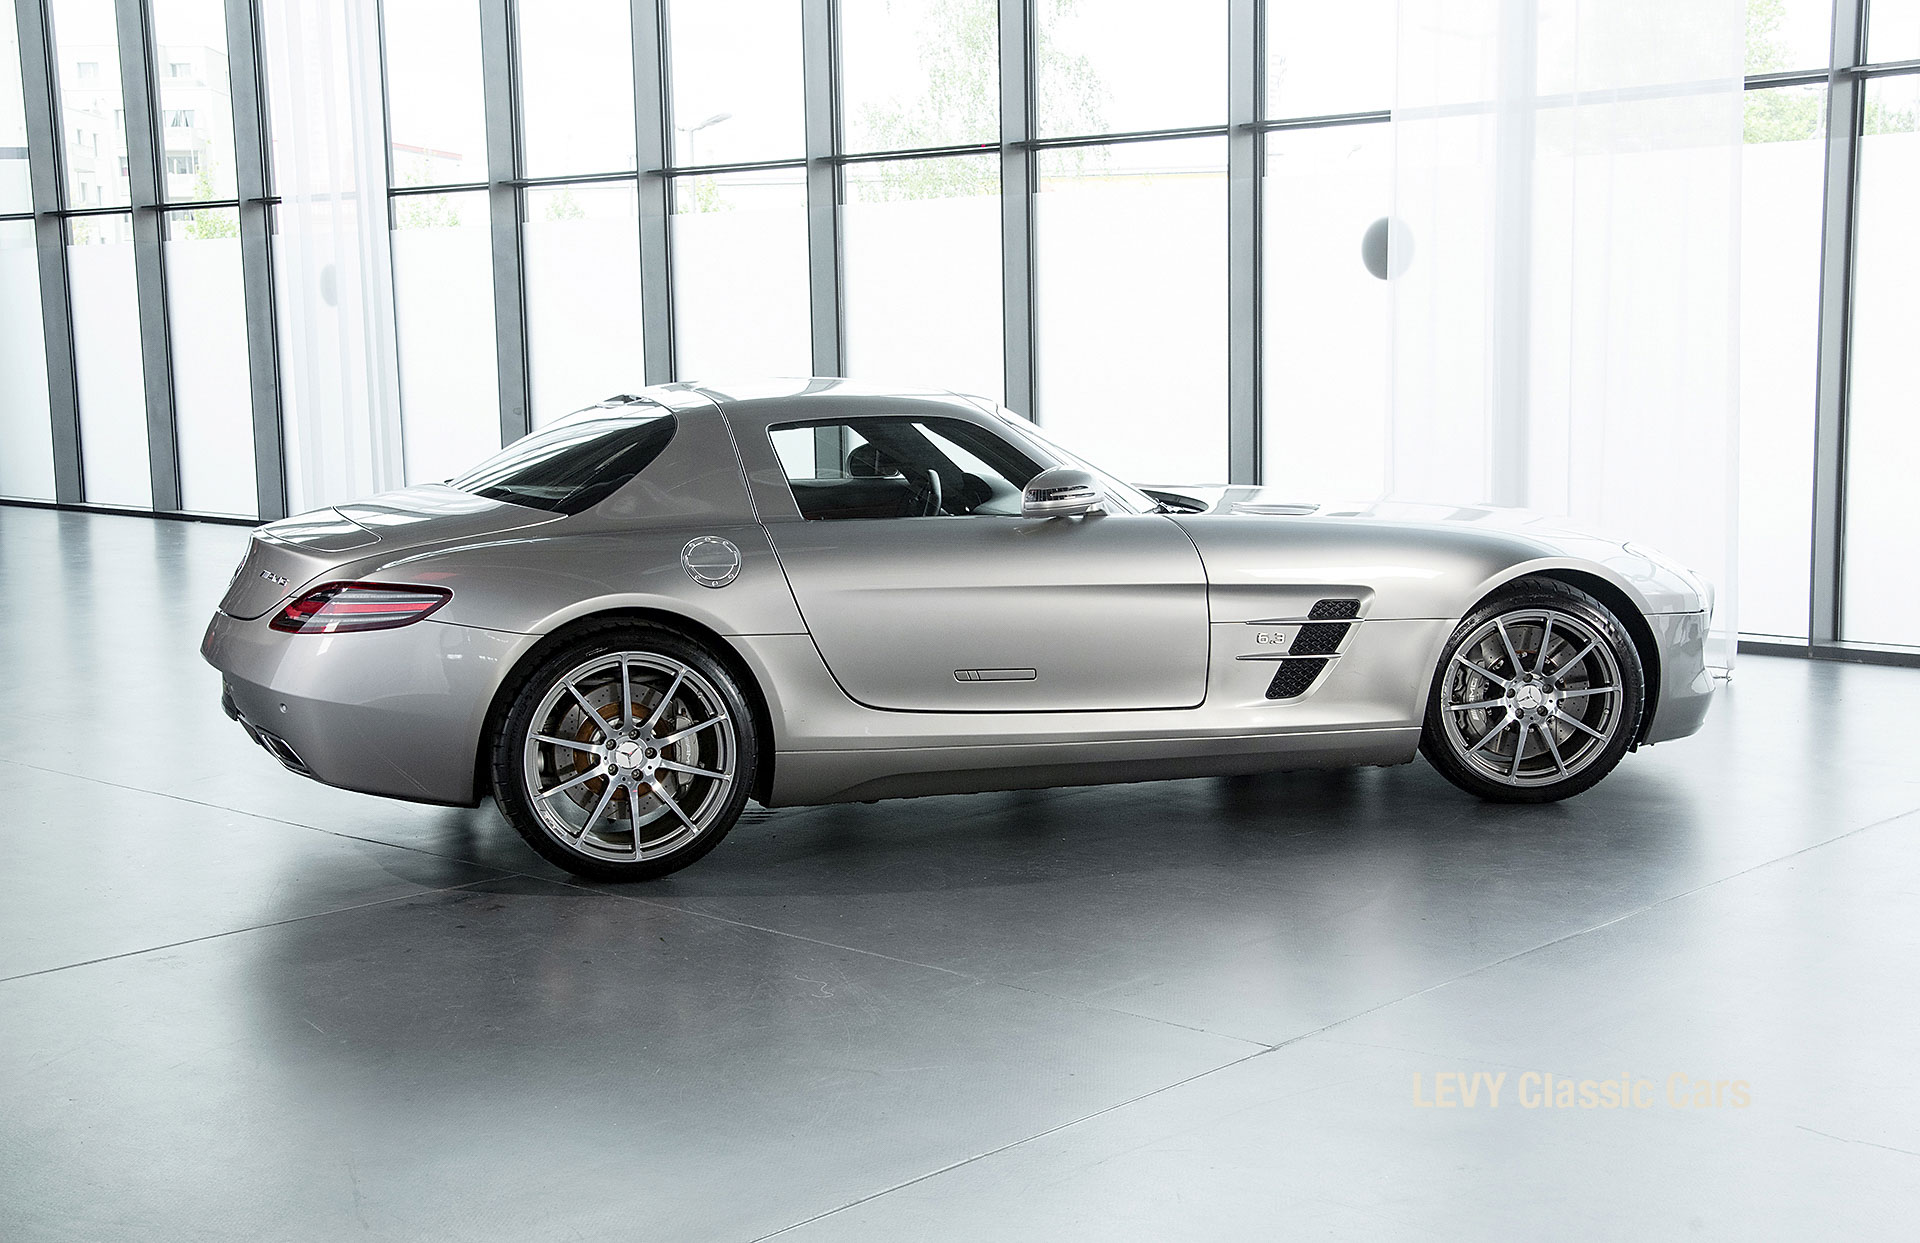 MB SLS AMG 6,3 Coupe 05633 065